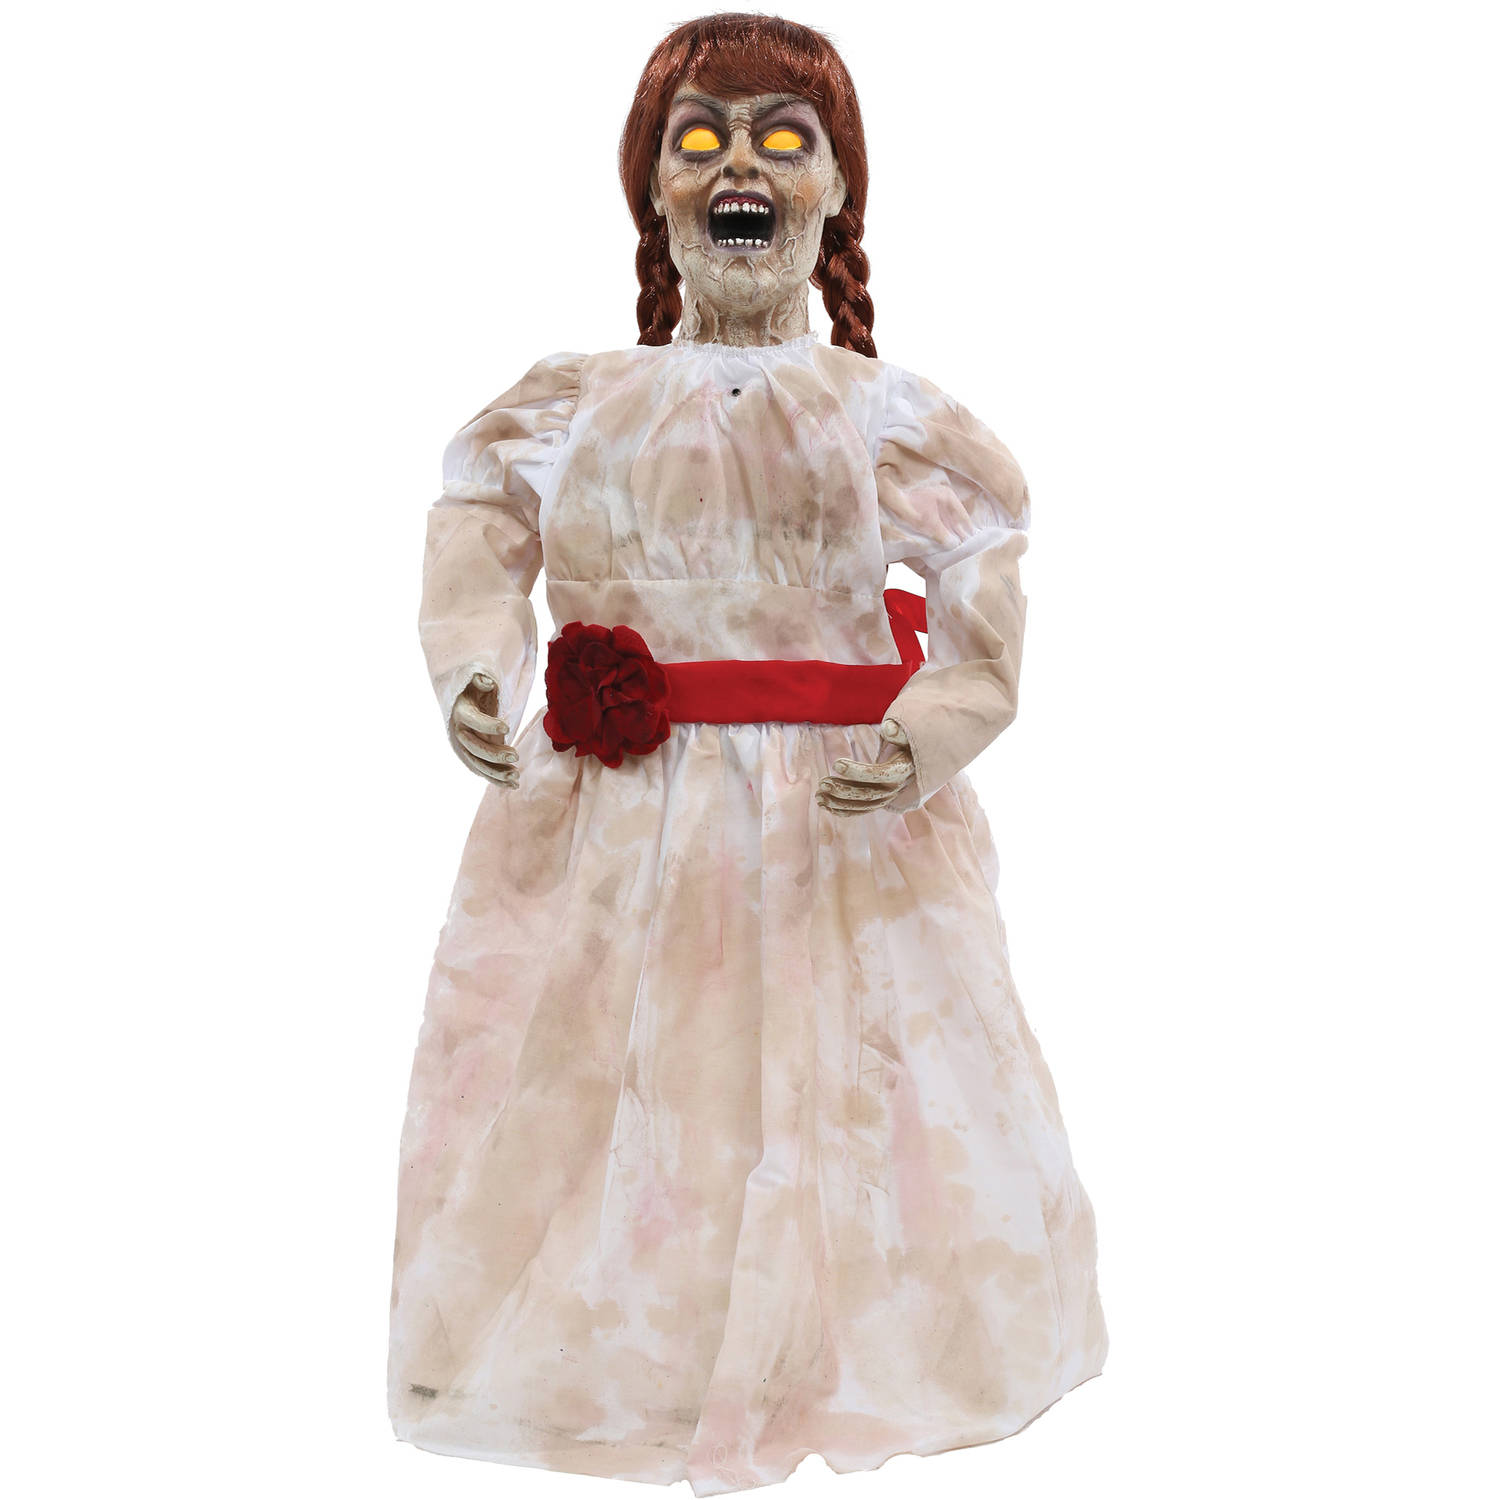 Grim Girl Doll Halloween Decoration